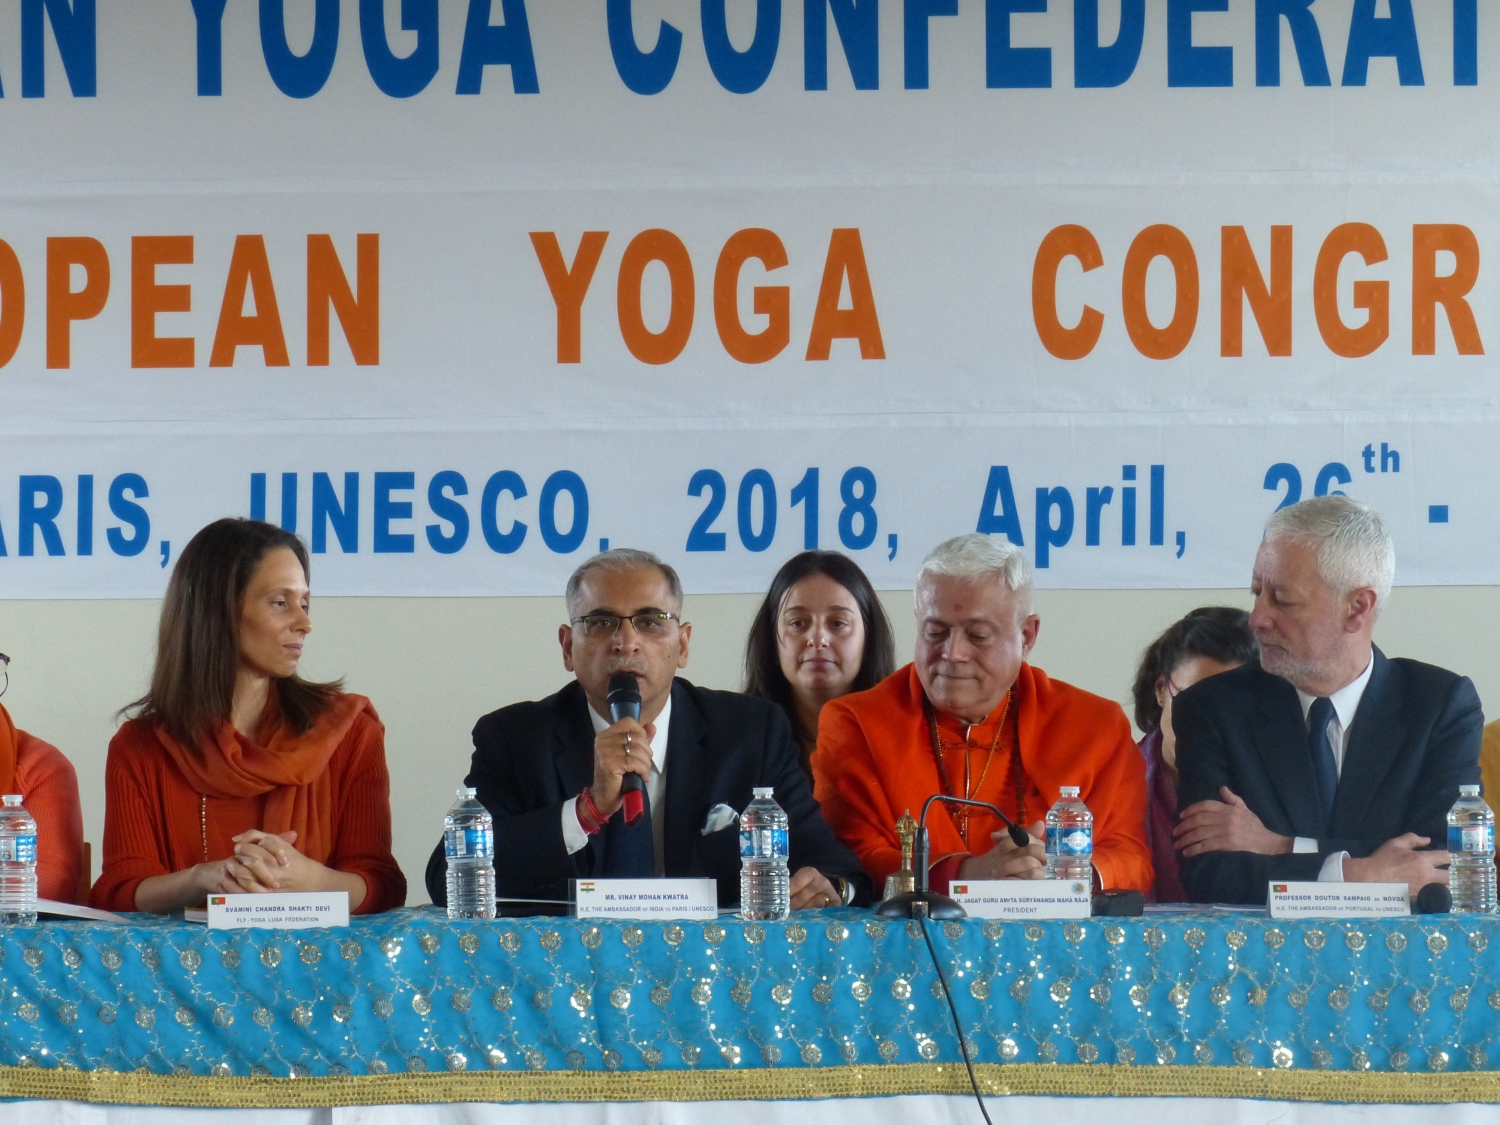 H. E. the Ambassador of India to UNESCO, Mr. Vinay Mohan Kwarta